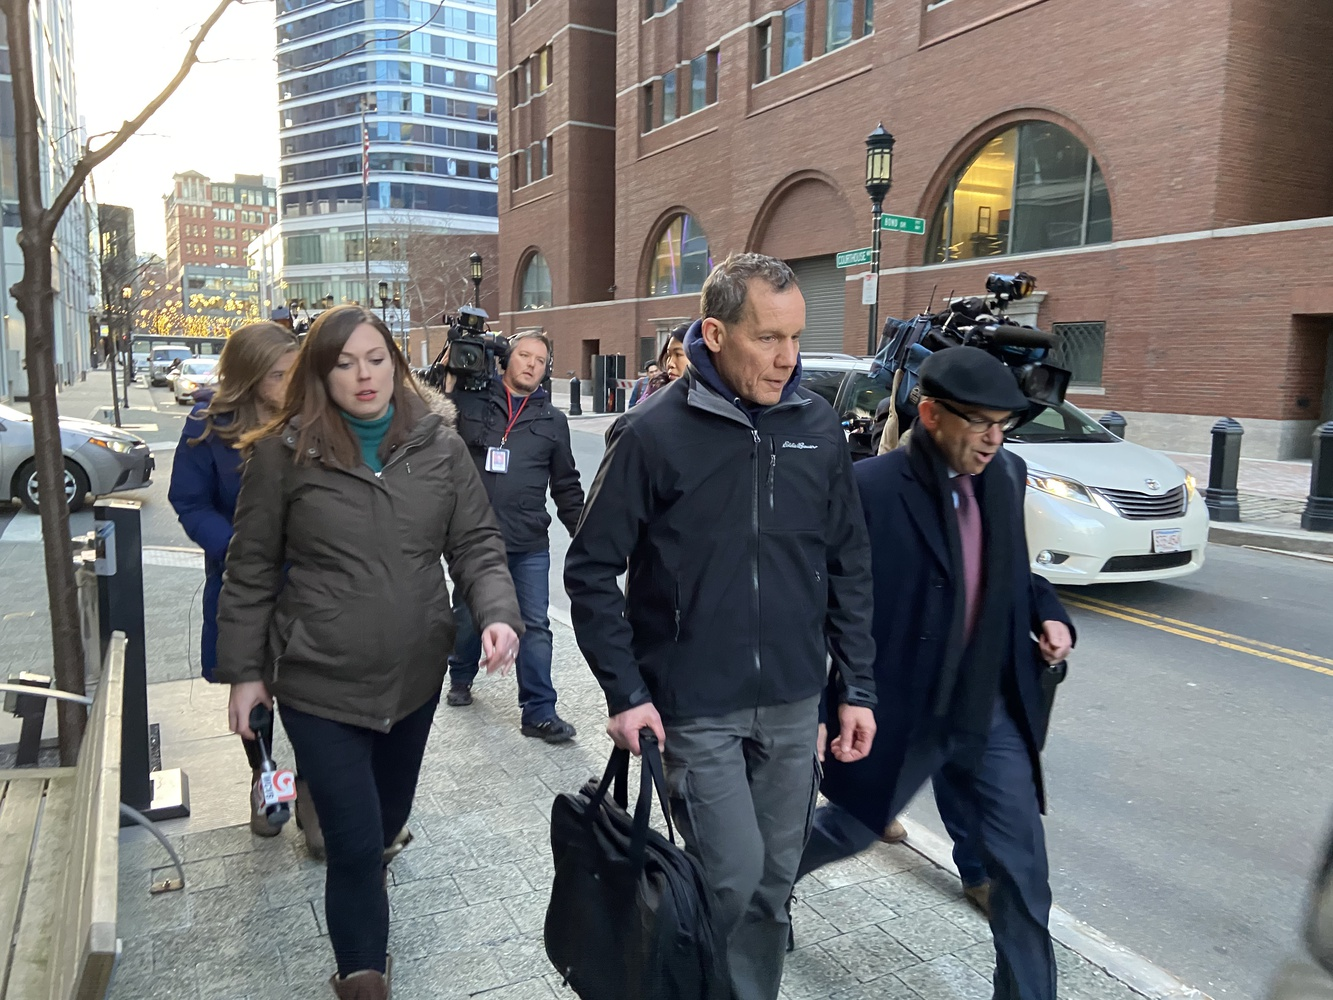 Chemistry professor Charles M. Lieber (center) leaves the John Joseph Moakley Courthouse in Boston after a bail hearing.